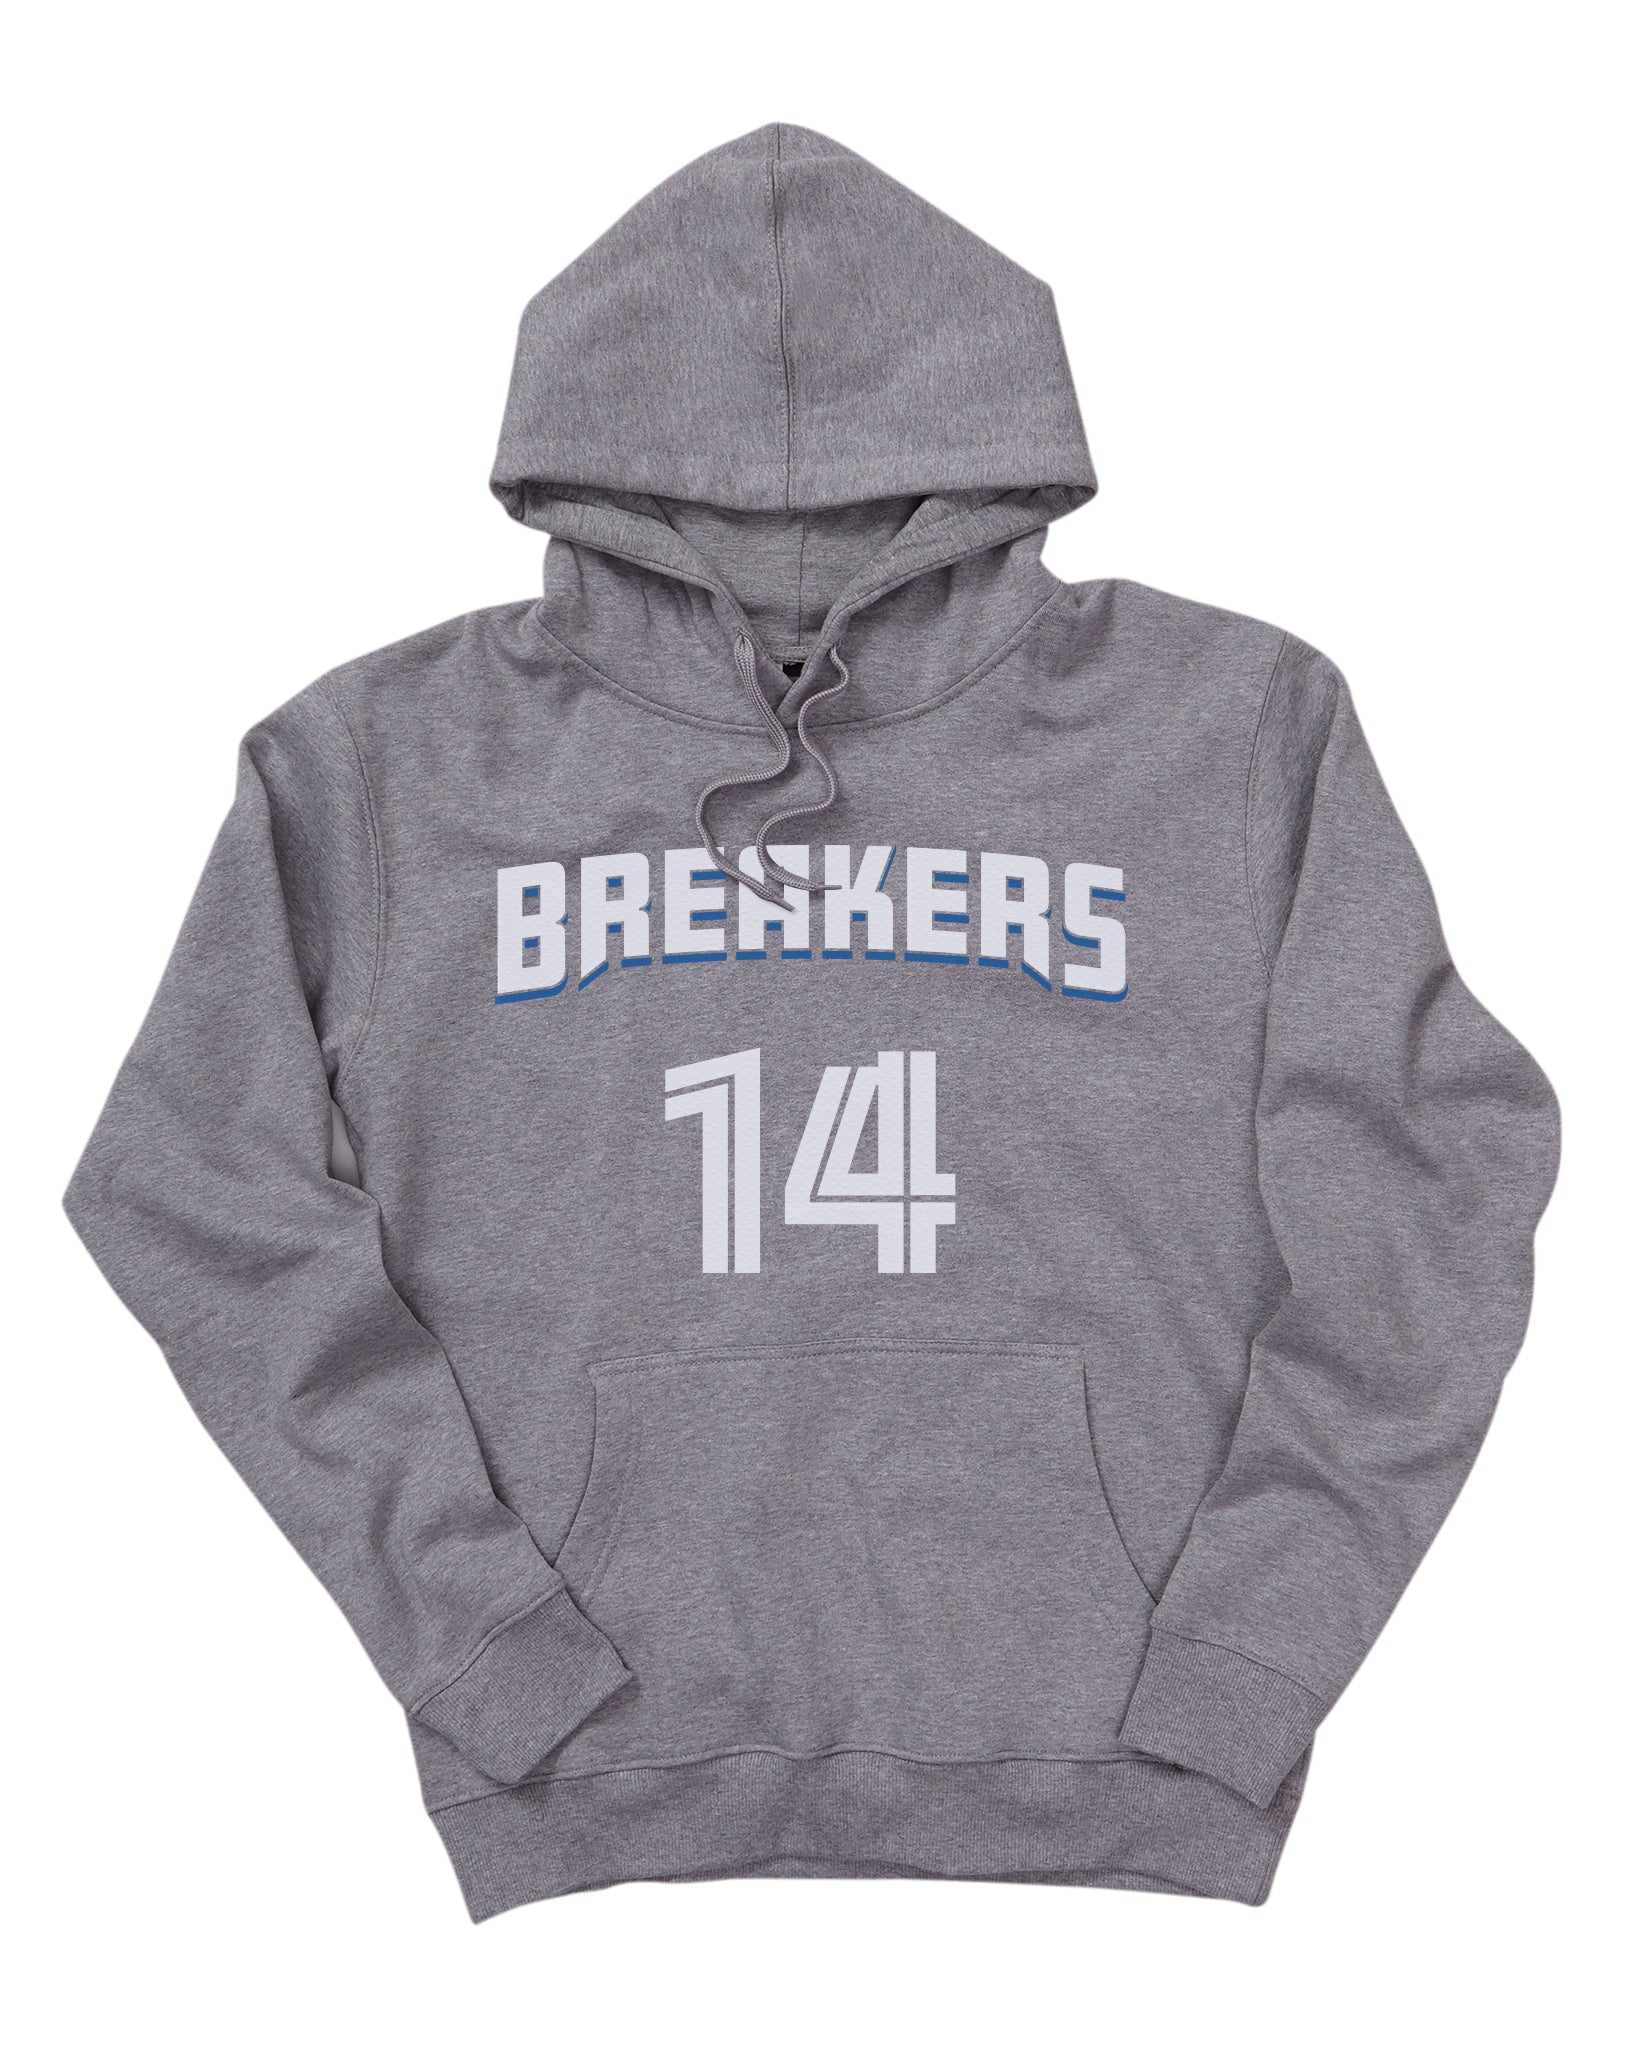 New Zealand Breakers 19/20 Name & Number Hoodie - RJ Hampton